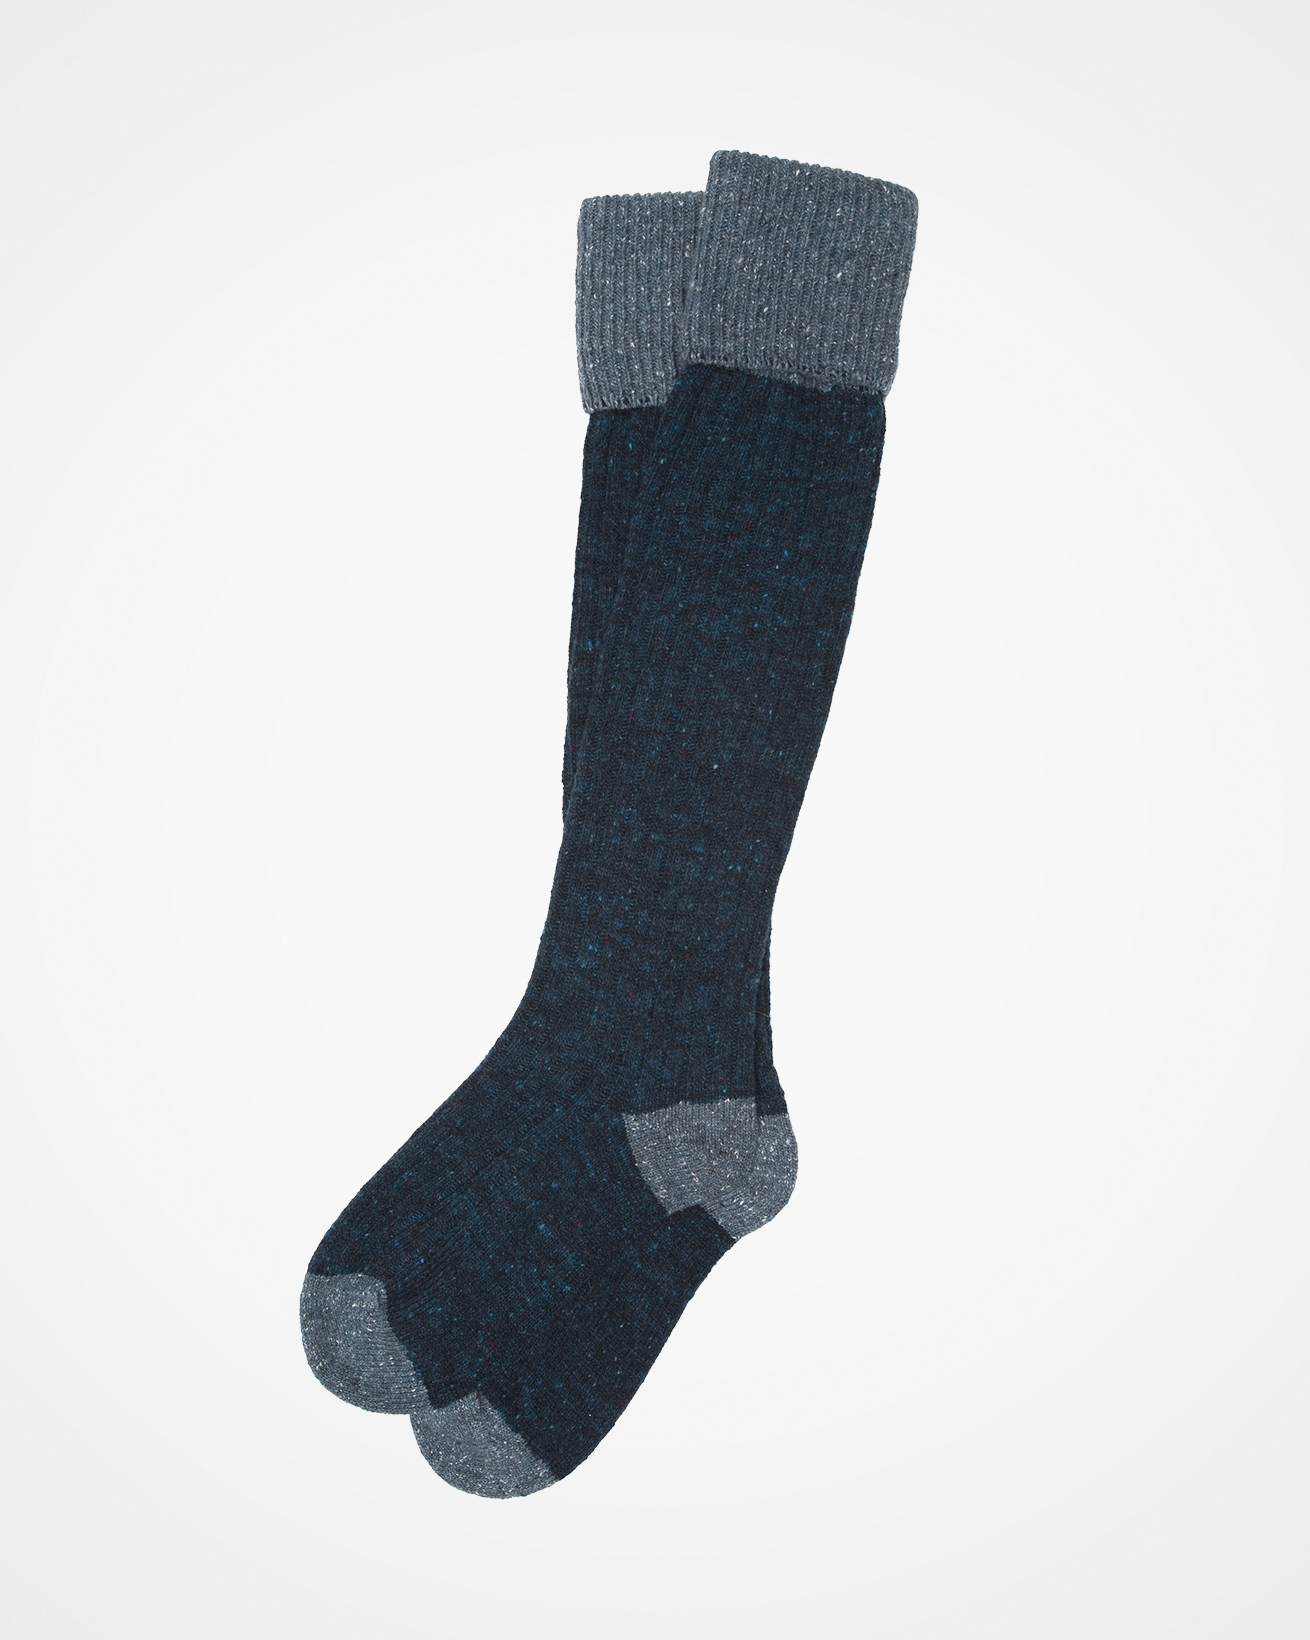 7775_mens-donegal-boot-sock_dark-navy.jpg